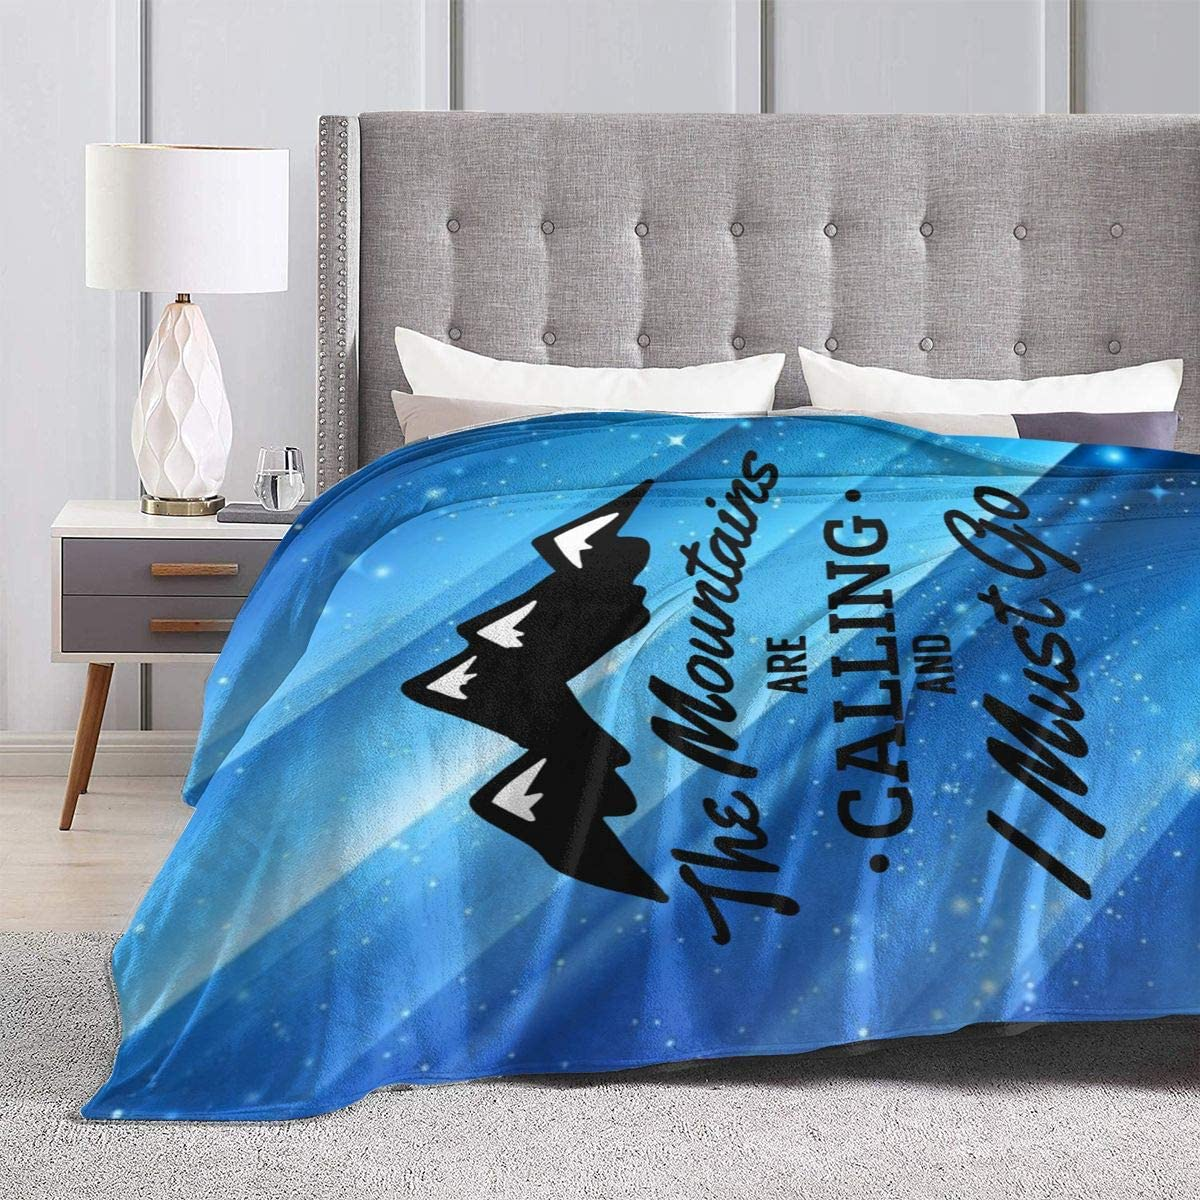 The Mountains Are Calling and I Must Sofa Fleece Blanket 50x60; 60x80 Made In US